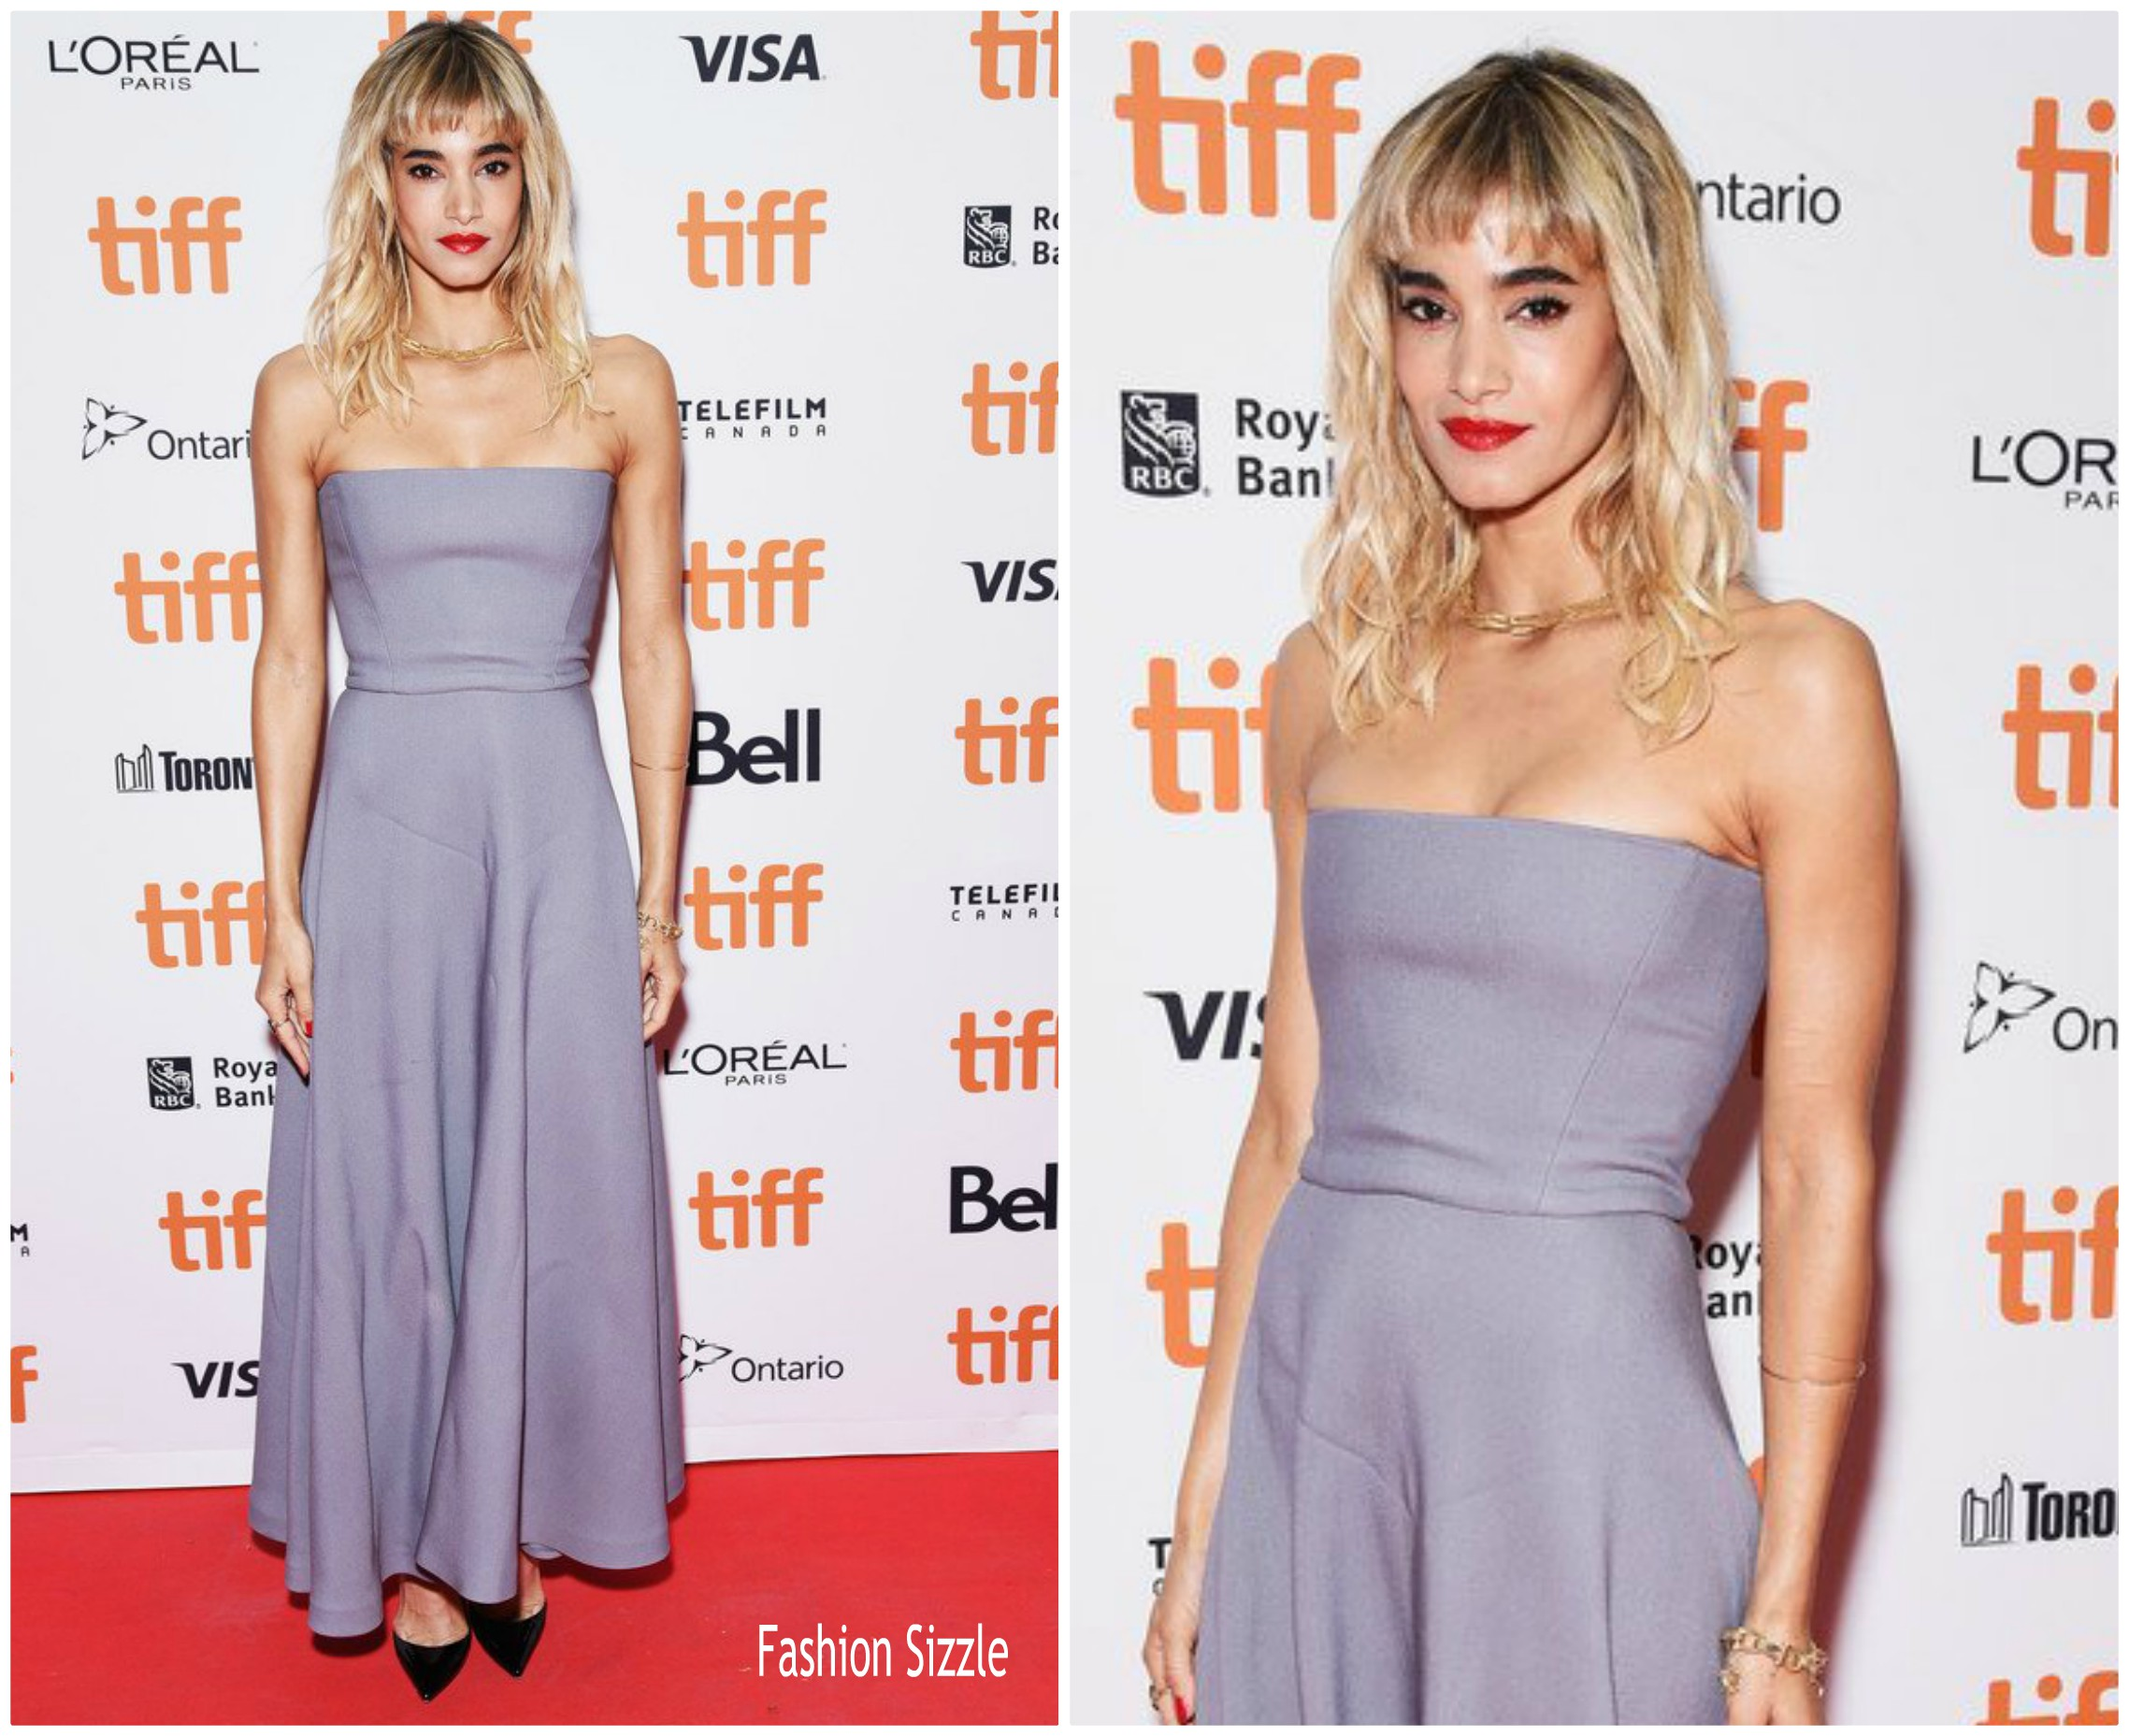 sofia-boutella-in-christian-dior-climax-toronto-international-film-festival-premiere